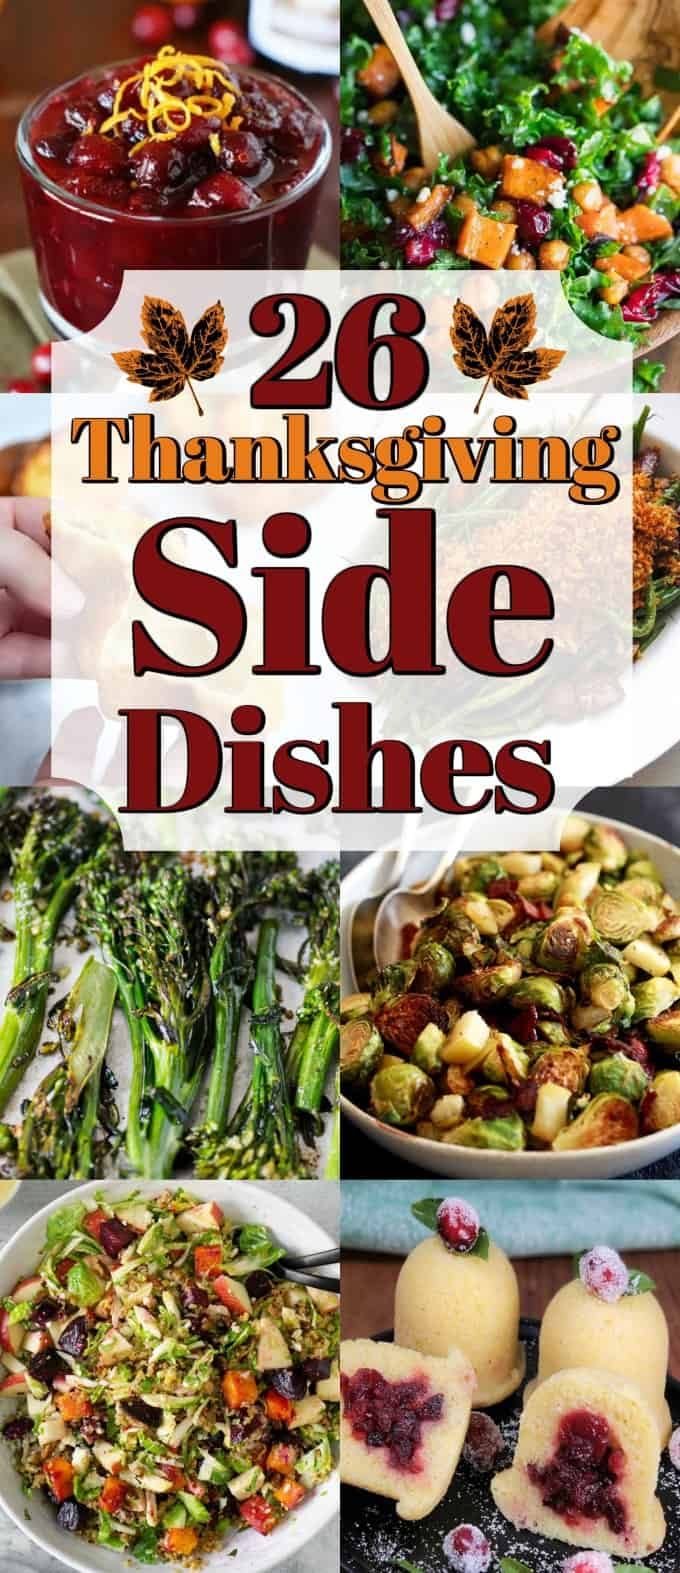 26 Thanksgiving Side Dishes for the holidays will amaze your family and friends!! #Thanksgiving #sidedishes #sides